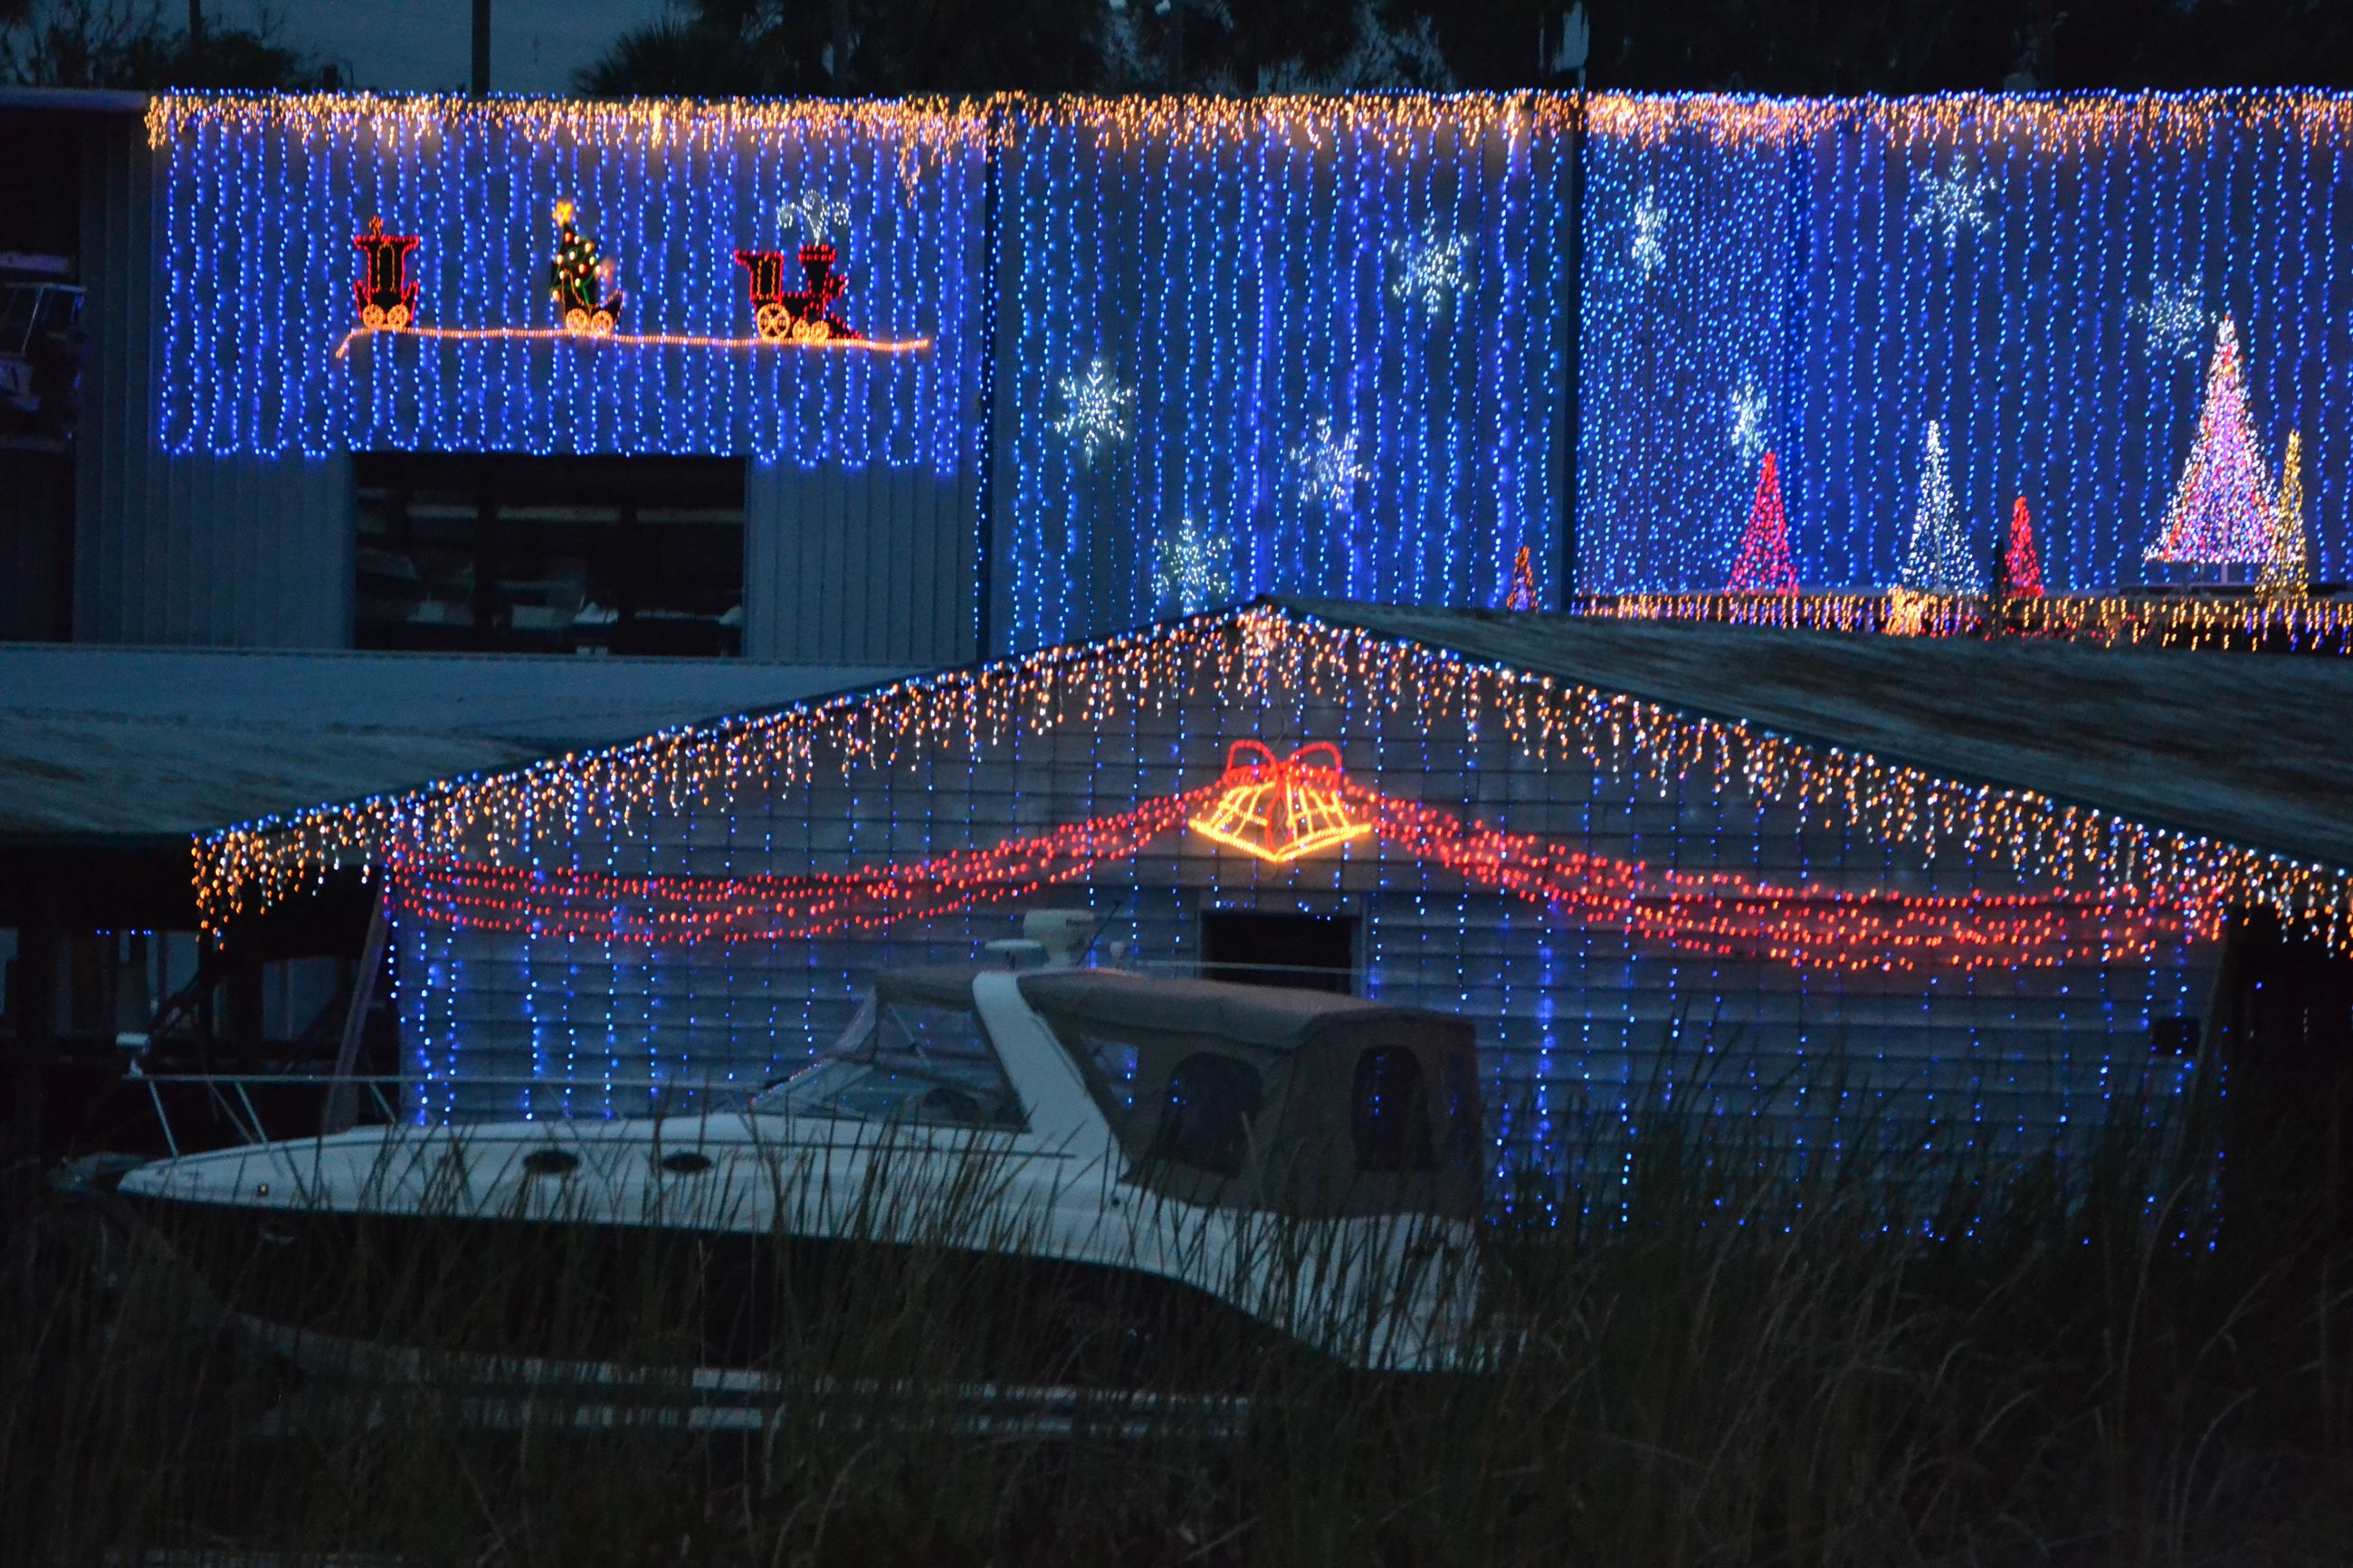 Christmas Lights at Boat Center